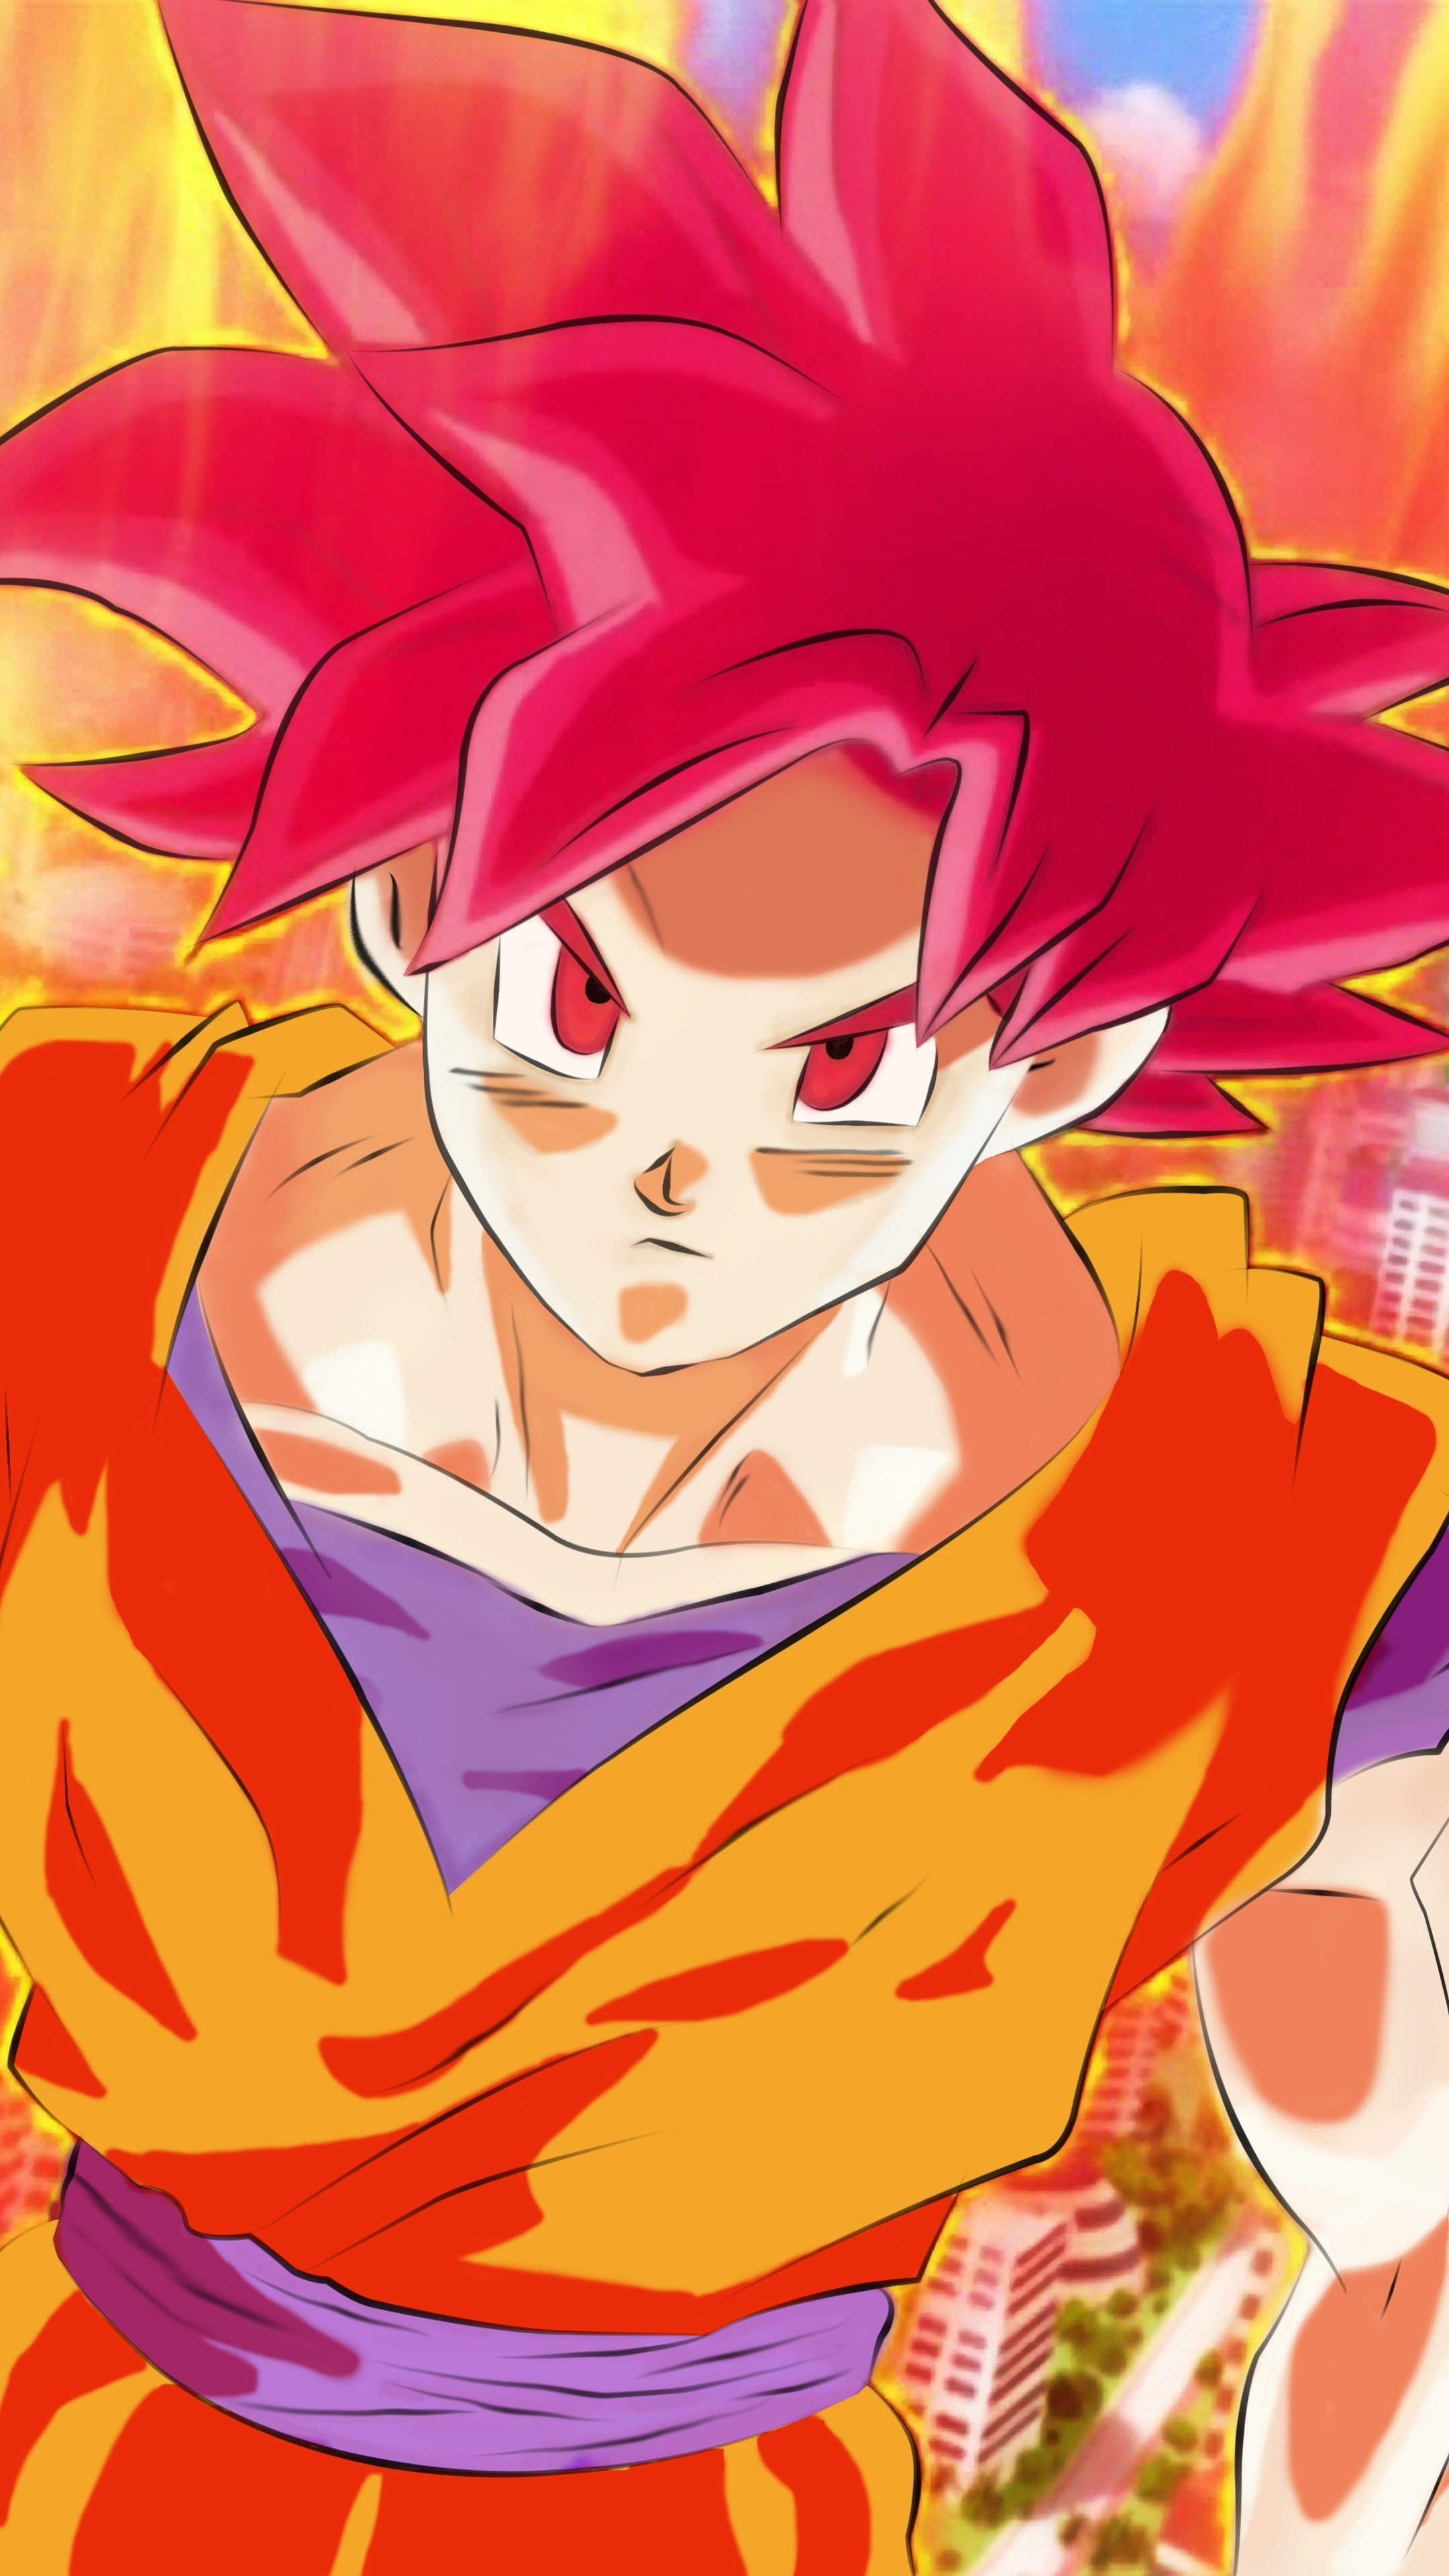 Super Saiyan God Goku Wallpaper (71+ images) Dragon Ball Z Goku Super Saiyan 6 Wallpapers